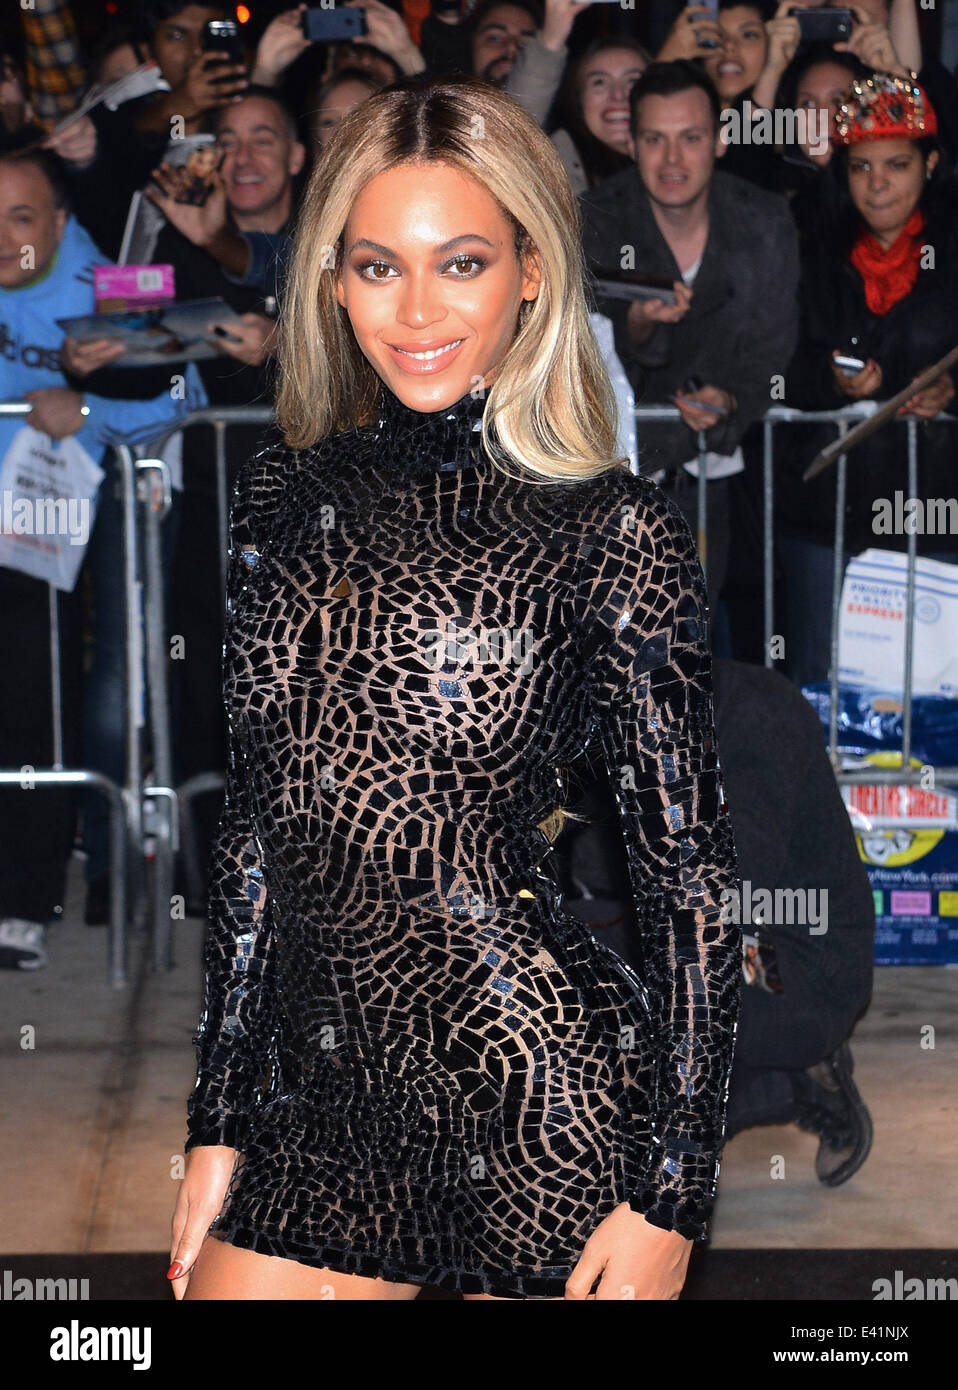 Beyonce wowed her fans some of who won a meet and greet with her at beyonce wowed her fans some of who won a meet and greet with her at a release party for her self titled visual album beyonce featuring beyonce where new m4hsunfo